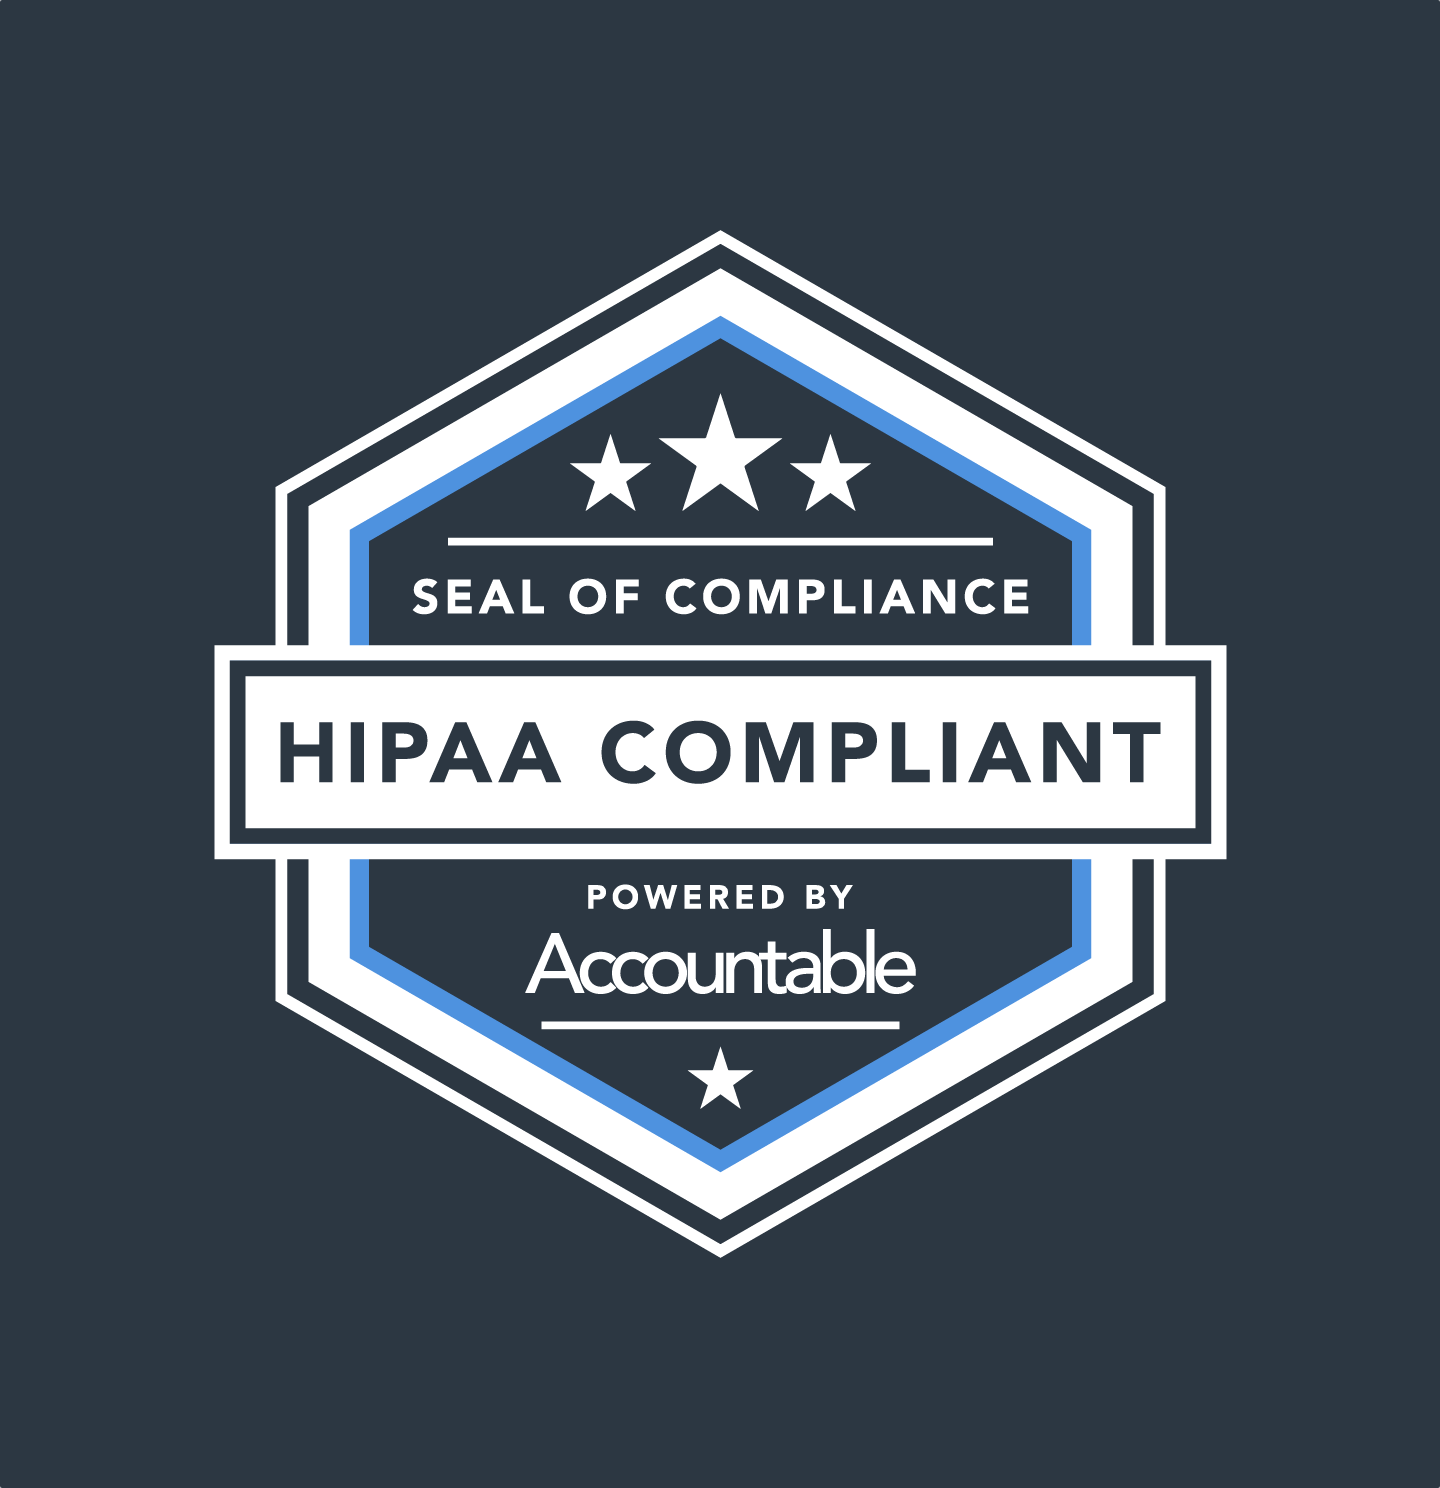 HIPAA compliance certification